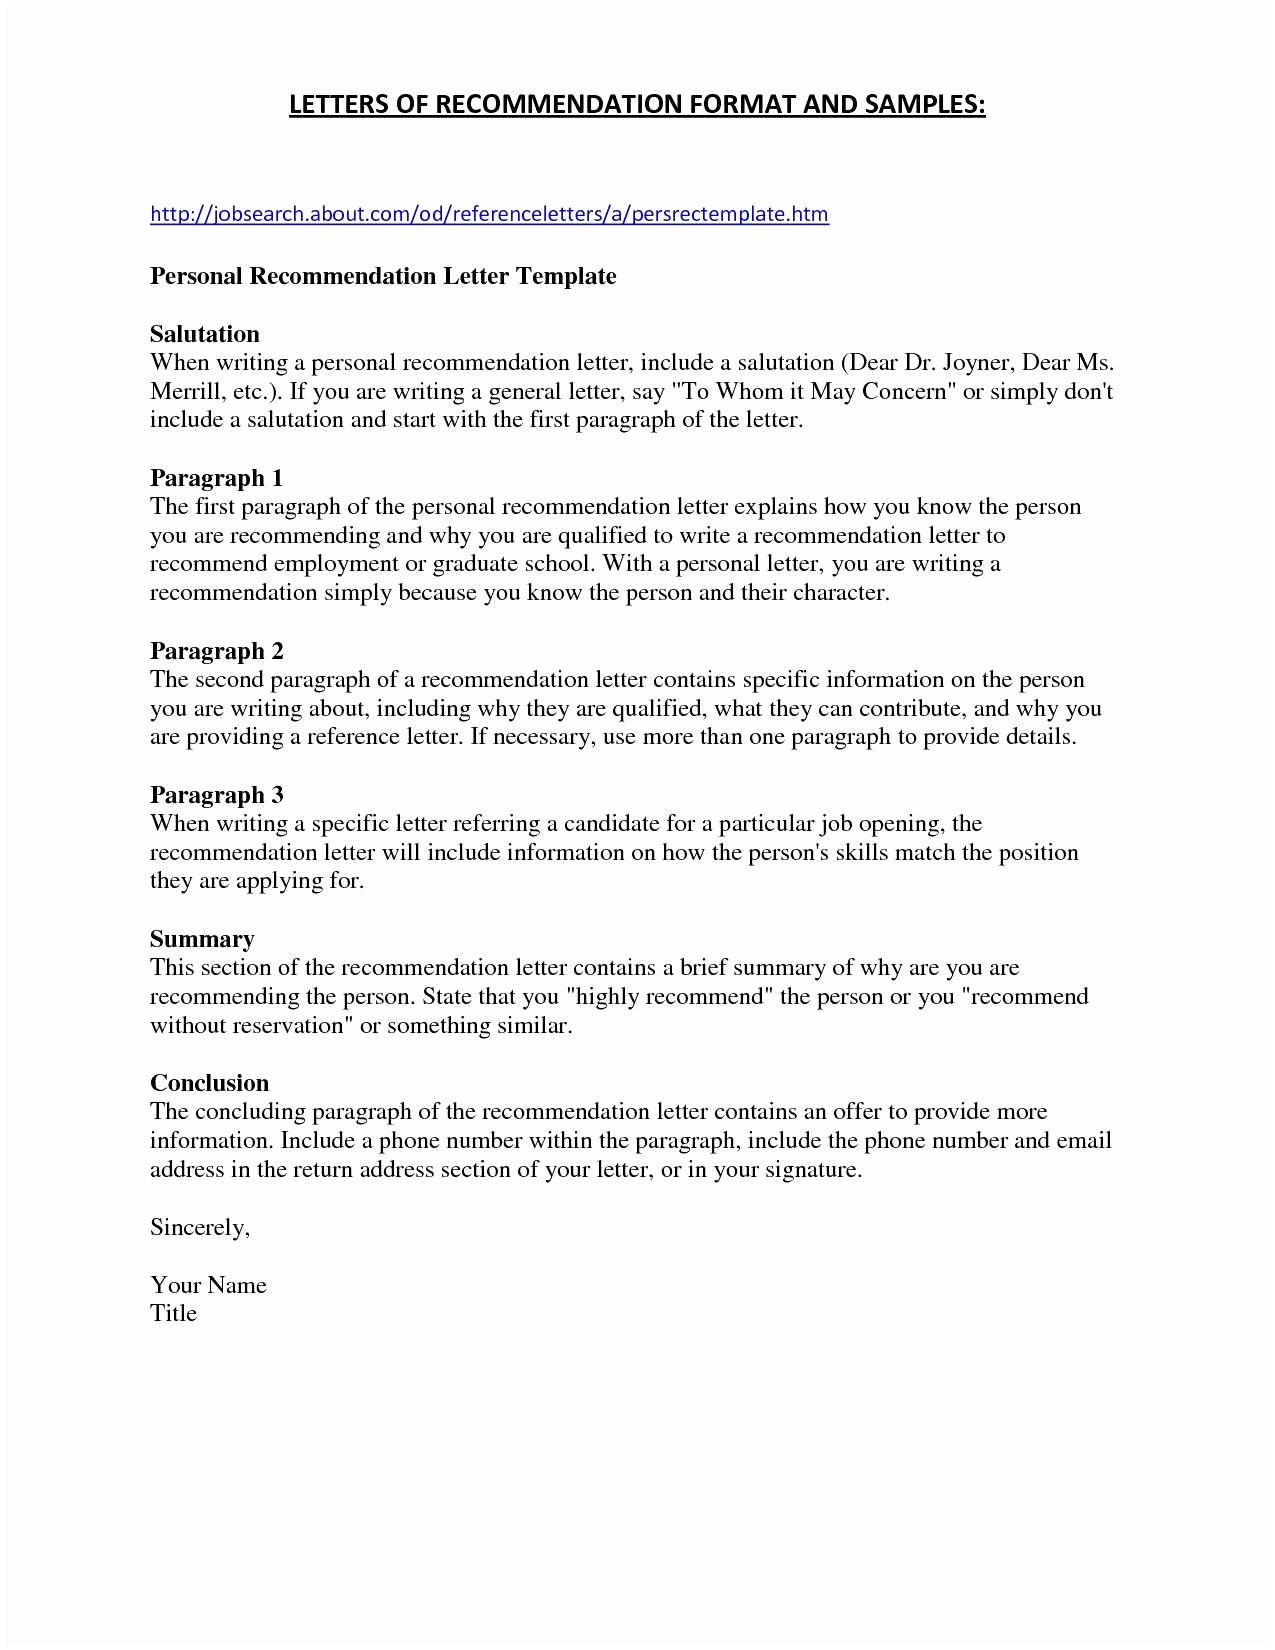 Certified Mail Letter Template - General Cover Letter Examples Samples How to Mail A Certified Letter